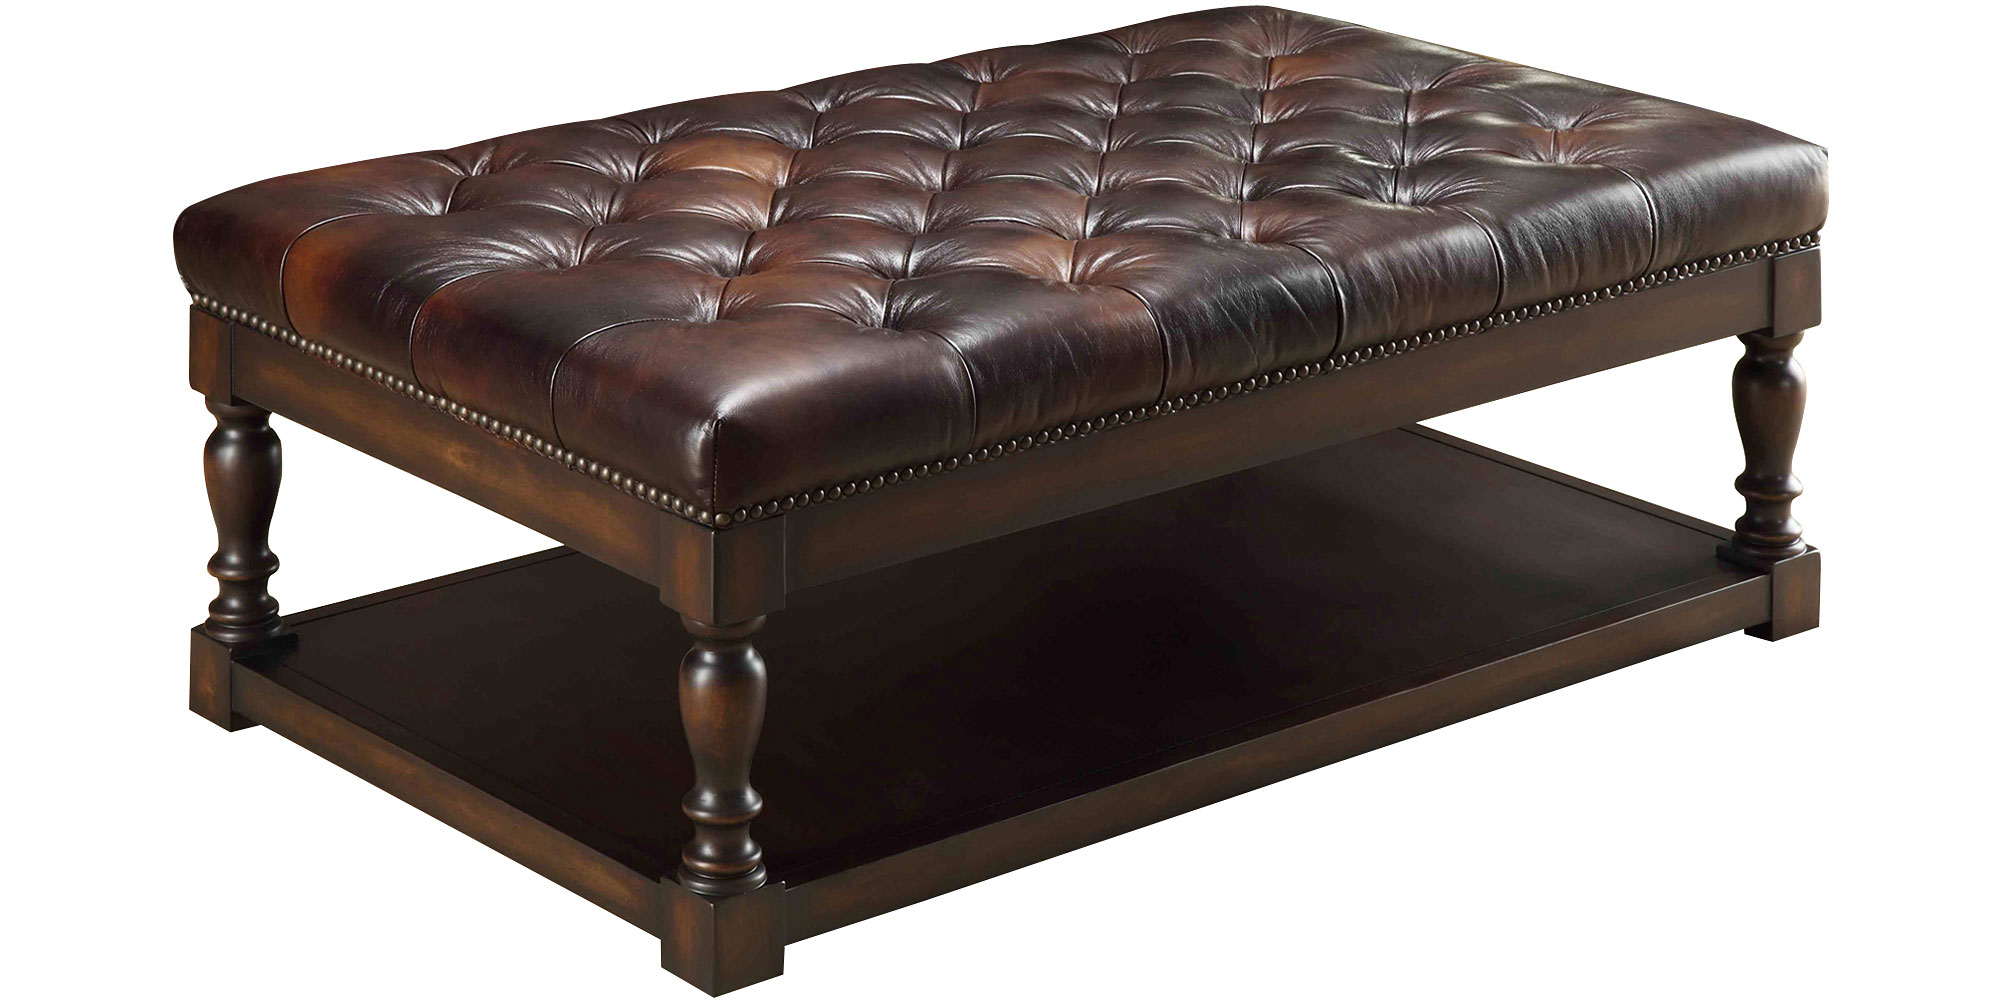 Leather-Coffee-Table-Ottoman-With-Storage-The-designer-Louis-Lara-has-shaped-the-piece-into-a-flowing-object-bordering-between-art-and-furniture (Image 7 of 9)